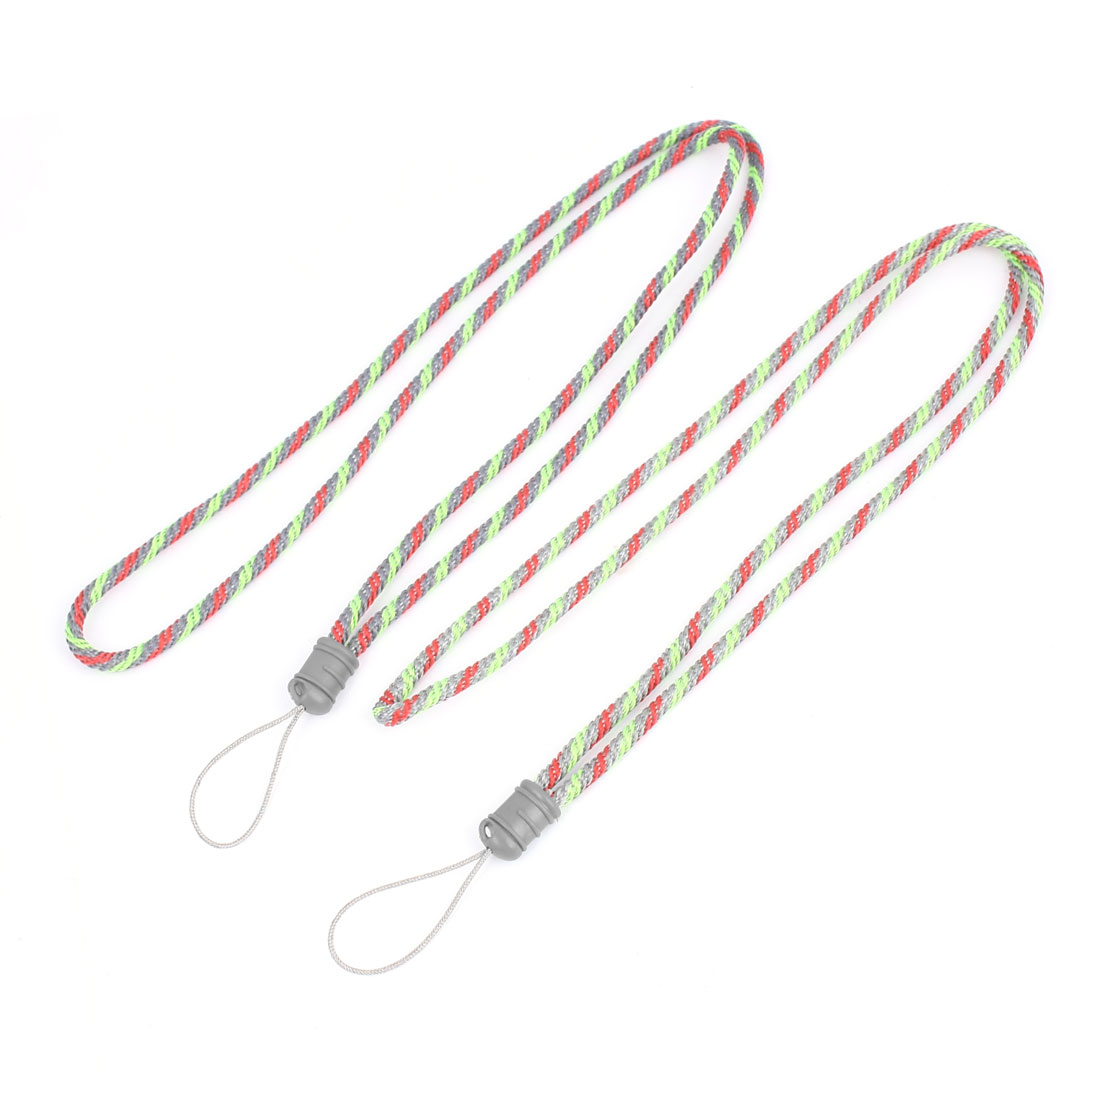 Phone Camera Braided Nylon String Neck Strap String Green Red Gray 2 Pcs